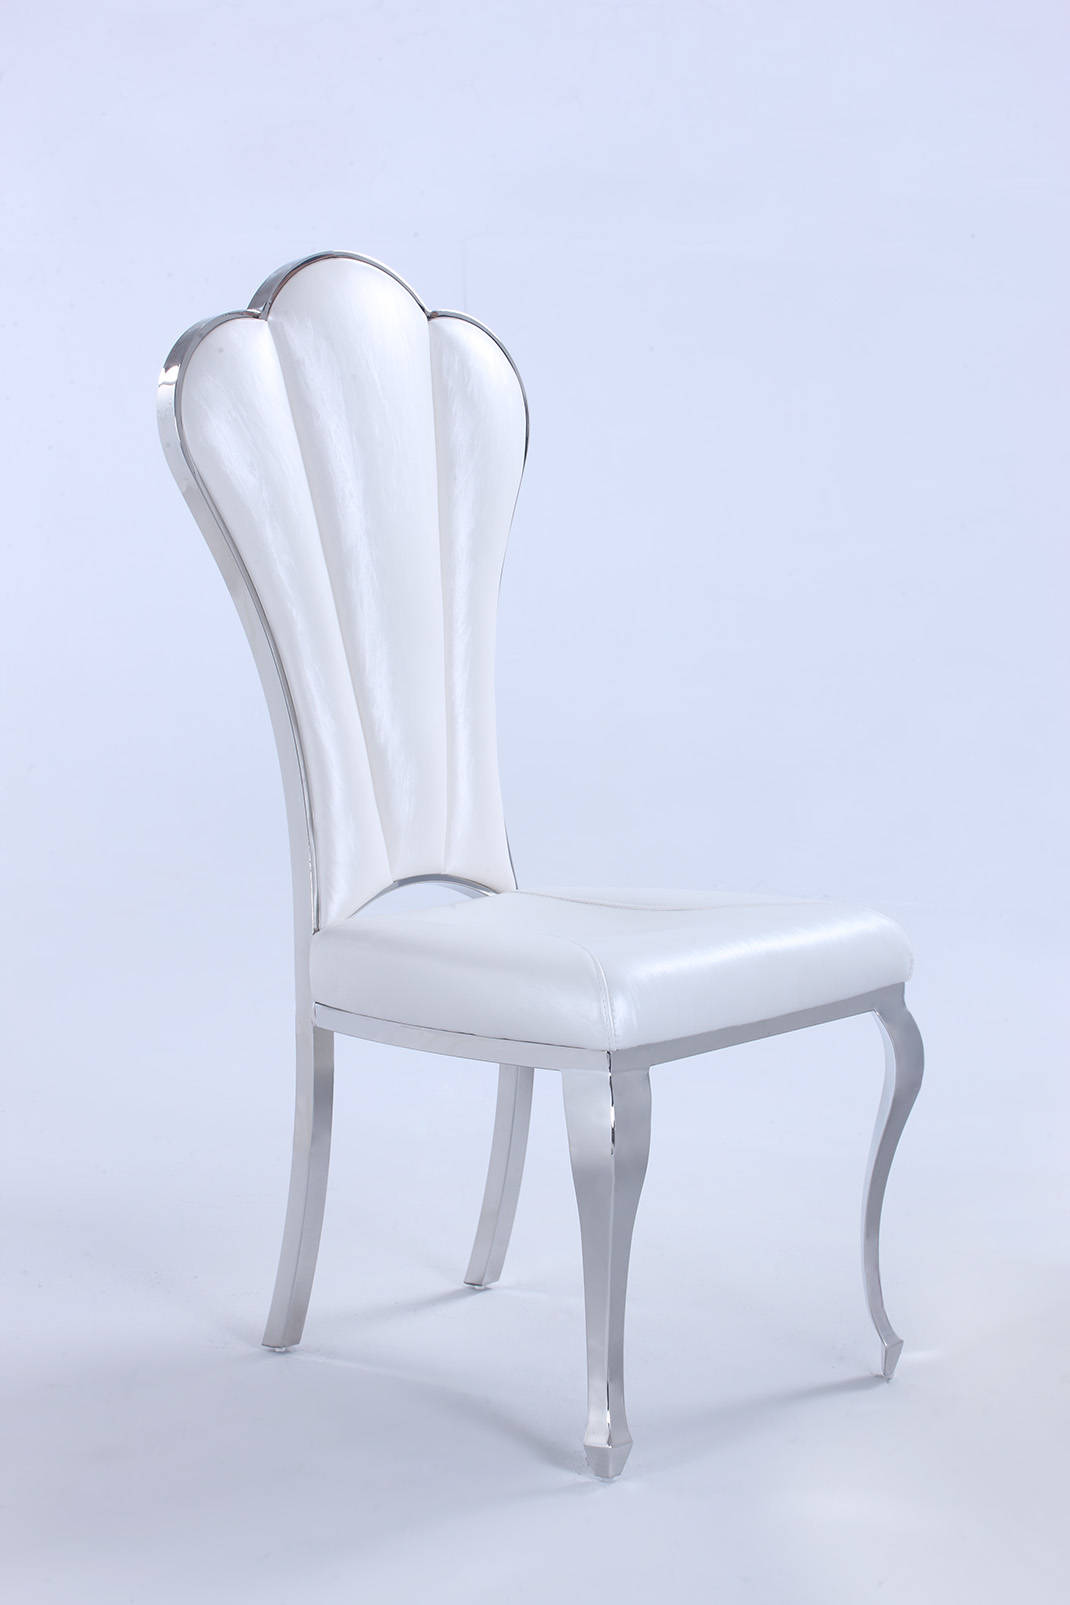 2 Chintaly Imports Raegan Shiny White Side Chairs The